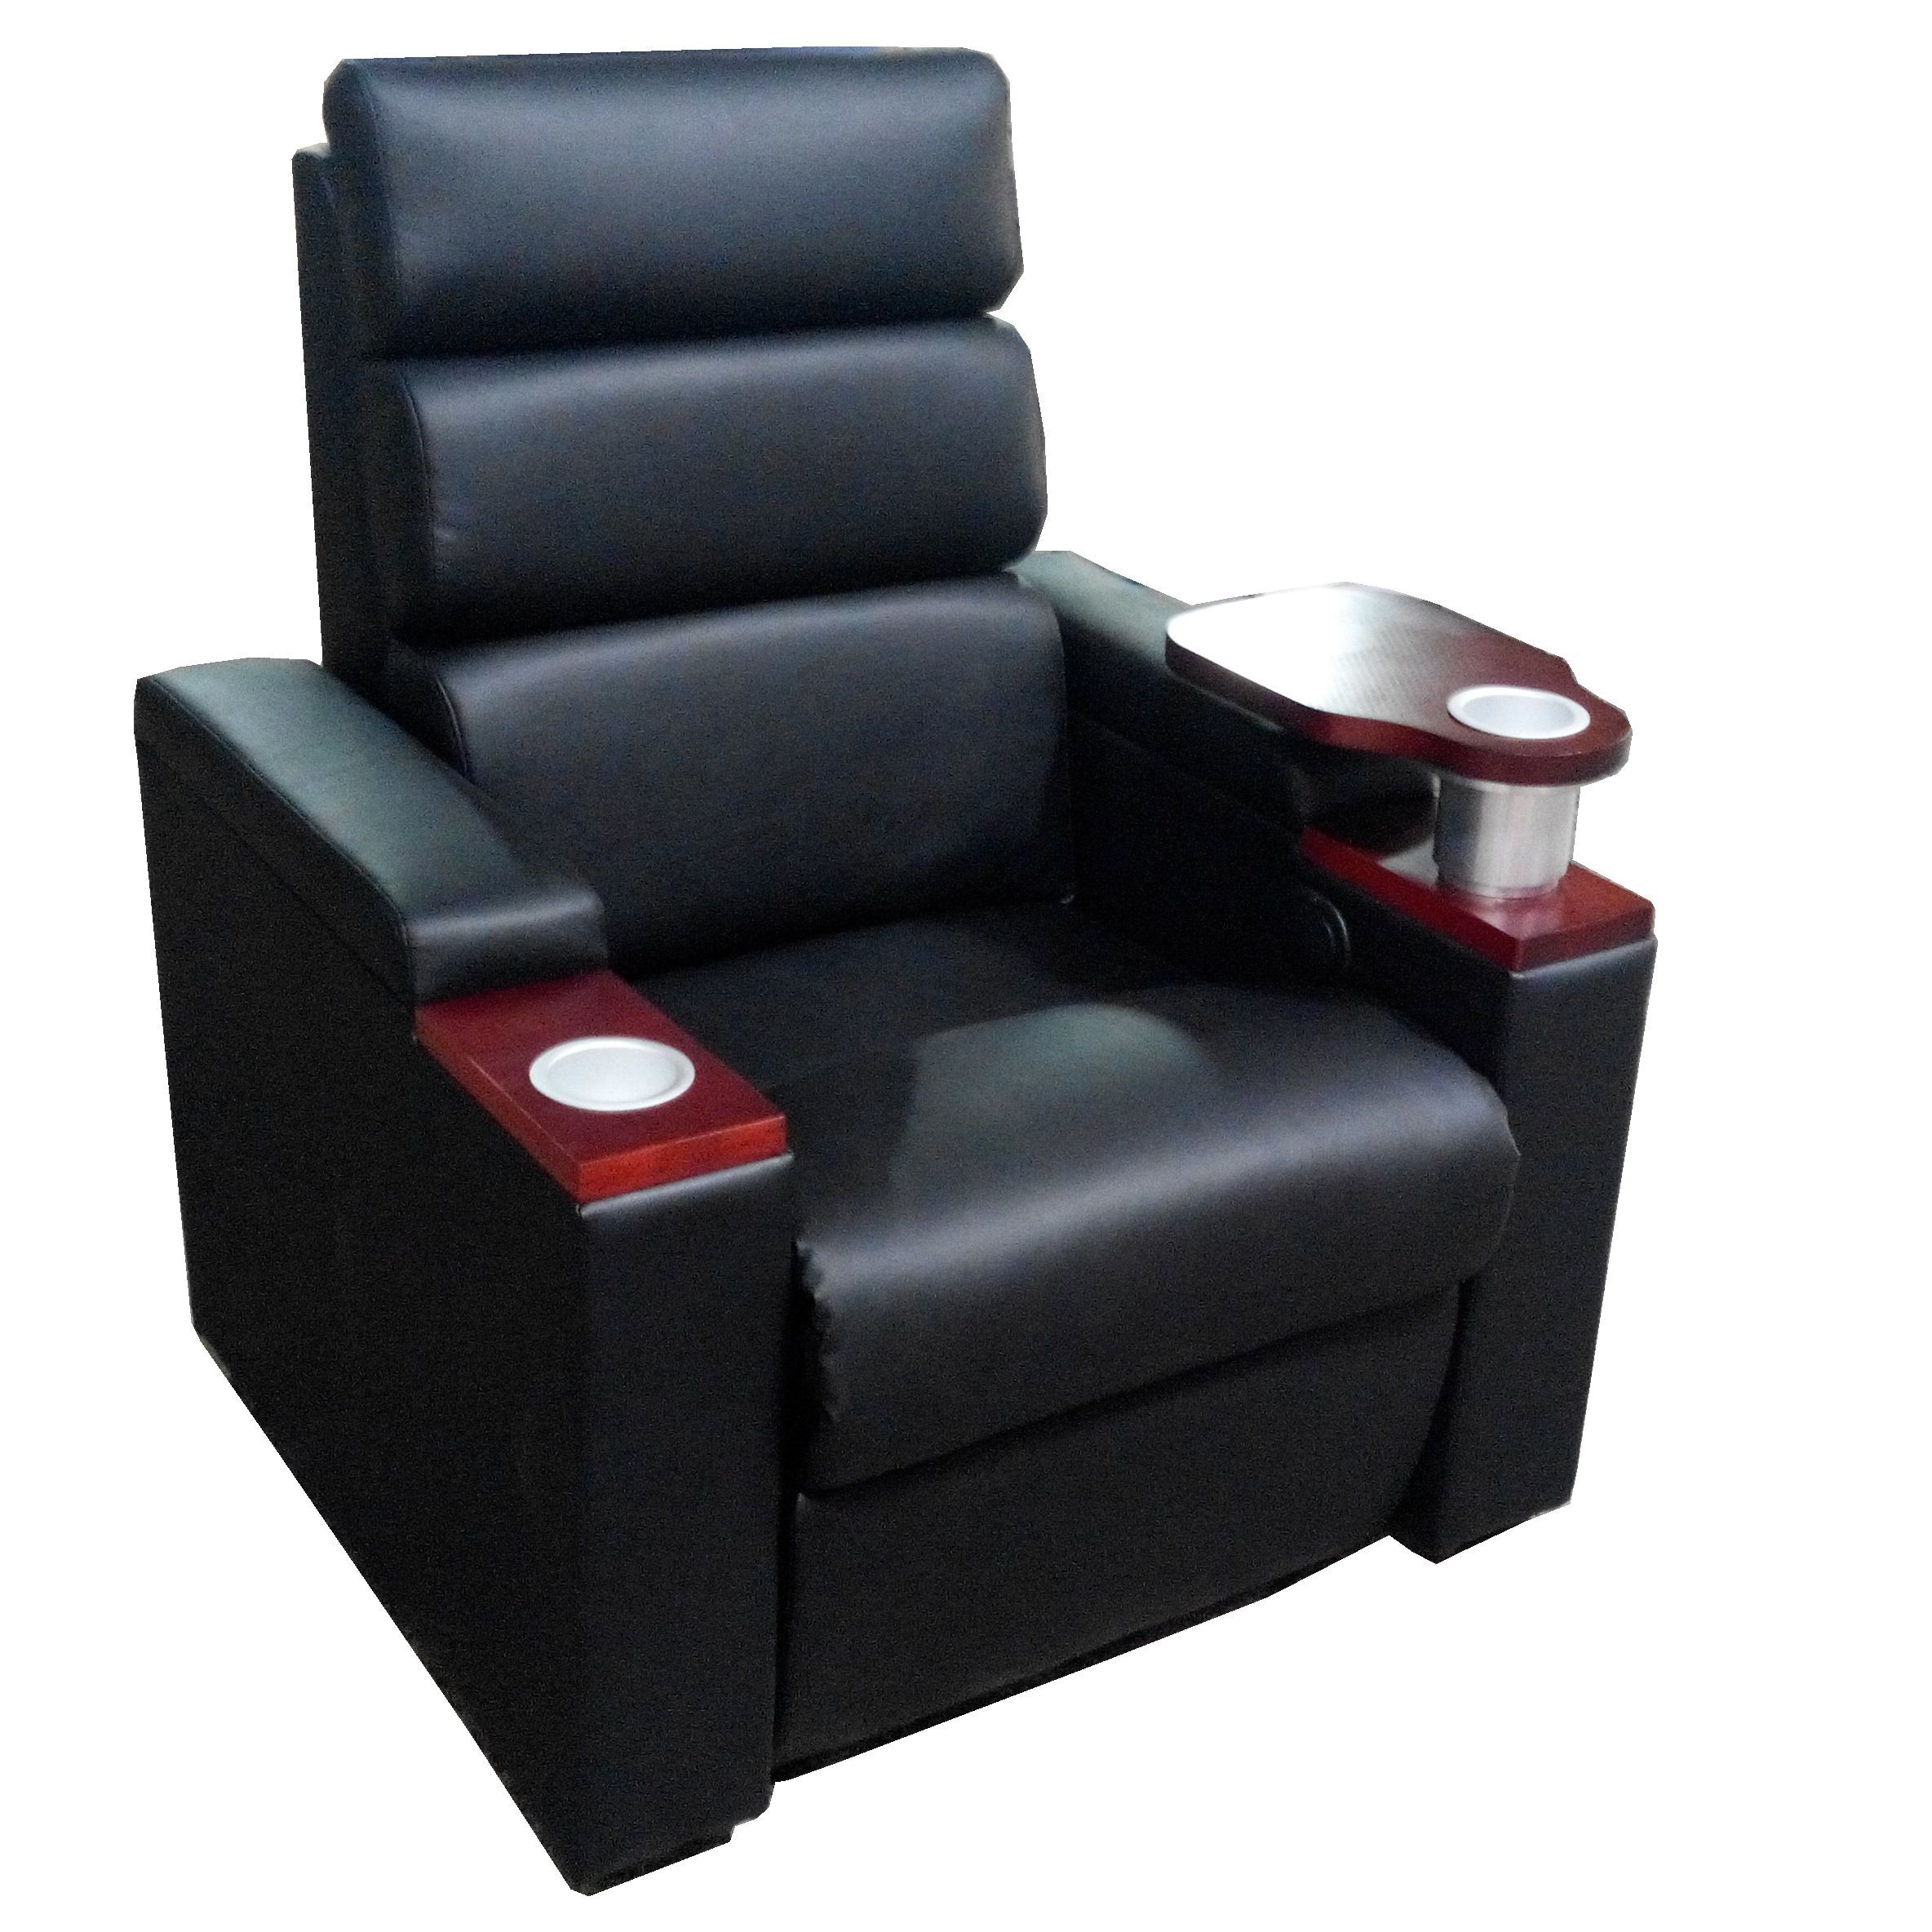 Incredible Hot Item Cinema Seat Real Leather Electric Reclining Theatre Sofa Cinema Chair Vip 3 Cjindustries Chair Design For Home Cjindustriesco